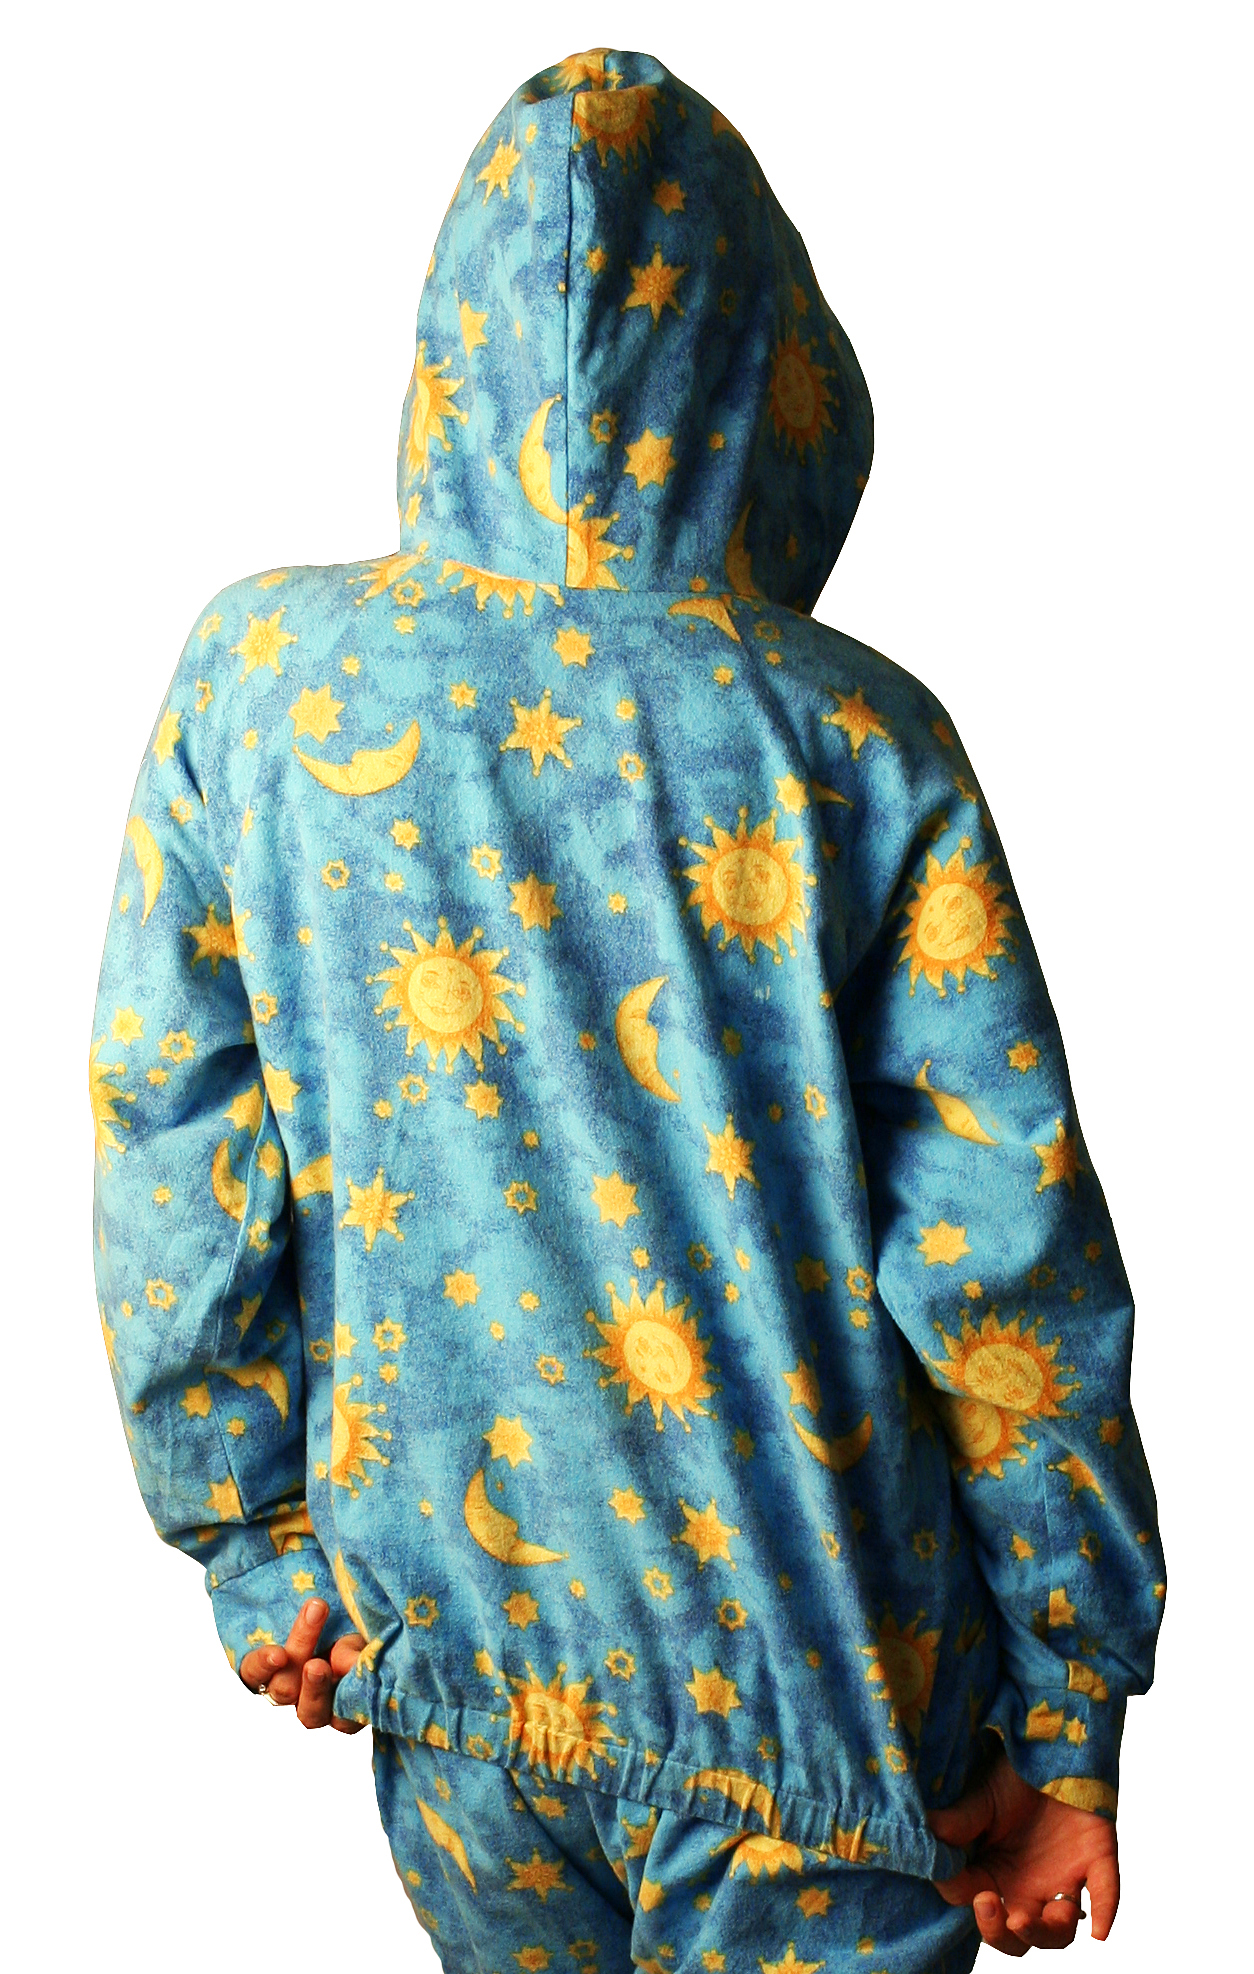 5b6ce2c0e7 Kajamaz Footed Pajamas Back ViewKajamaz Footed Pajamas Back View